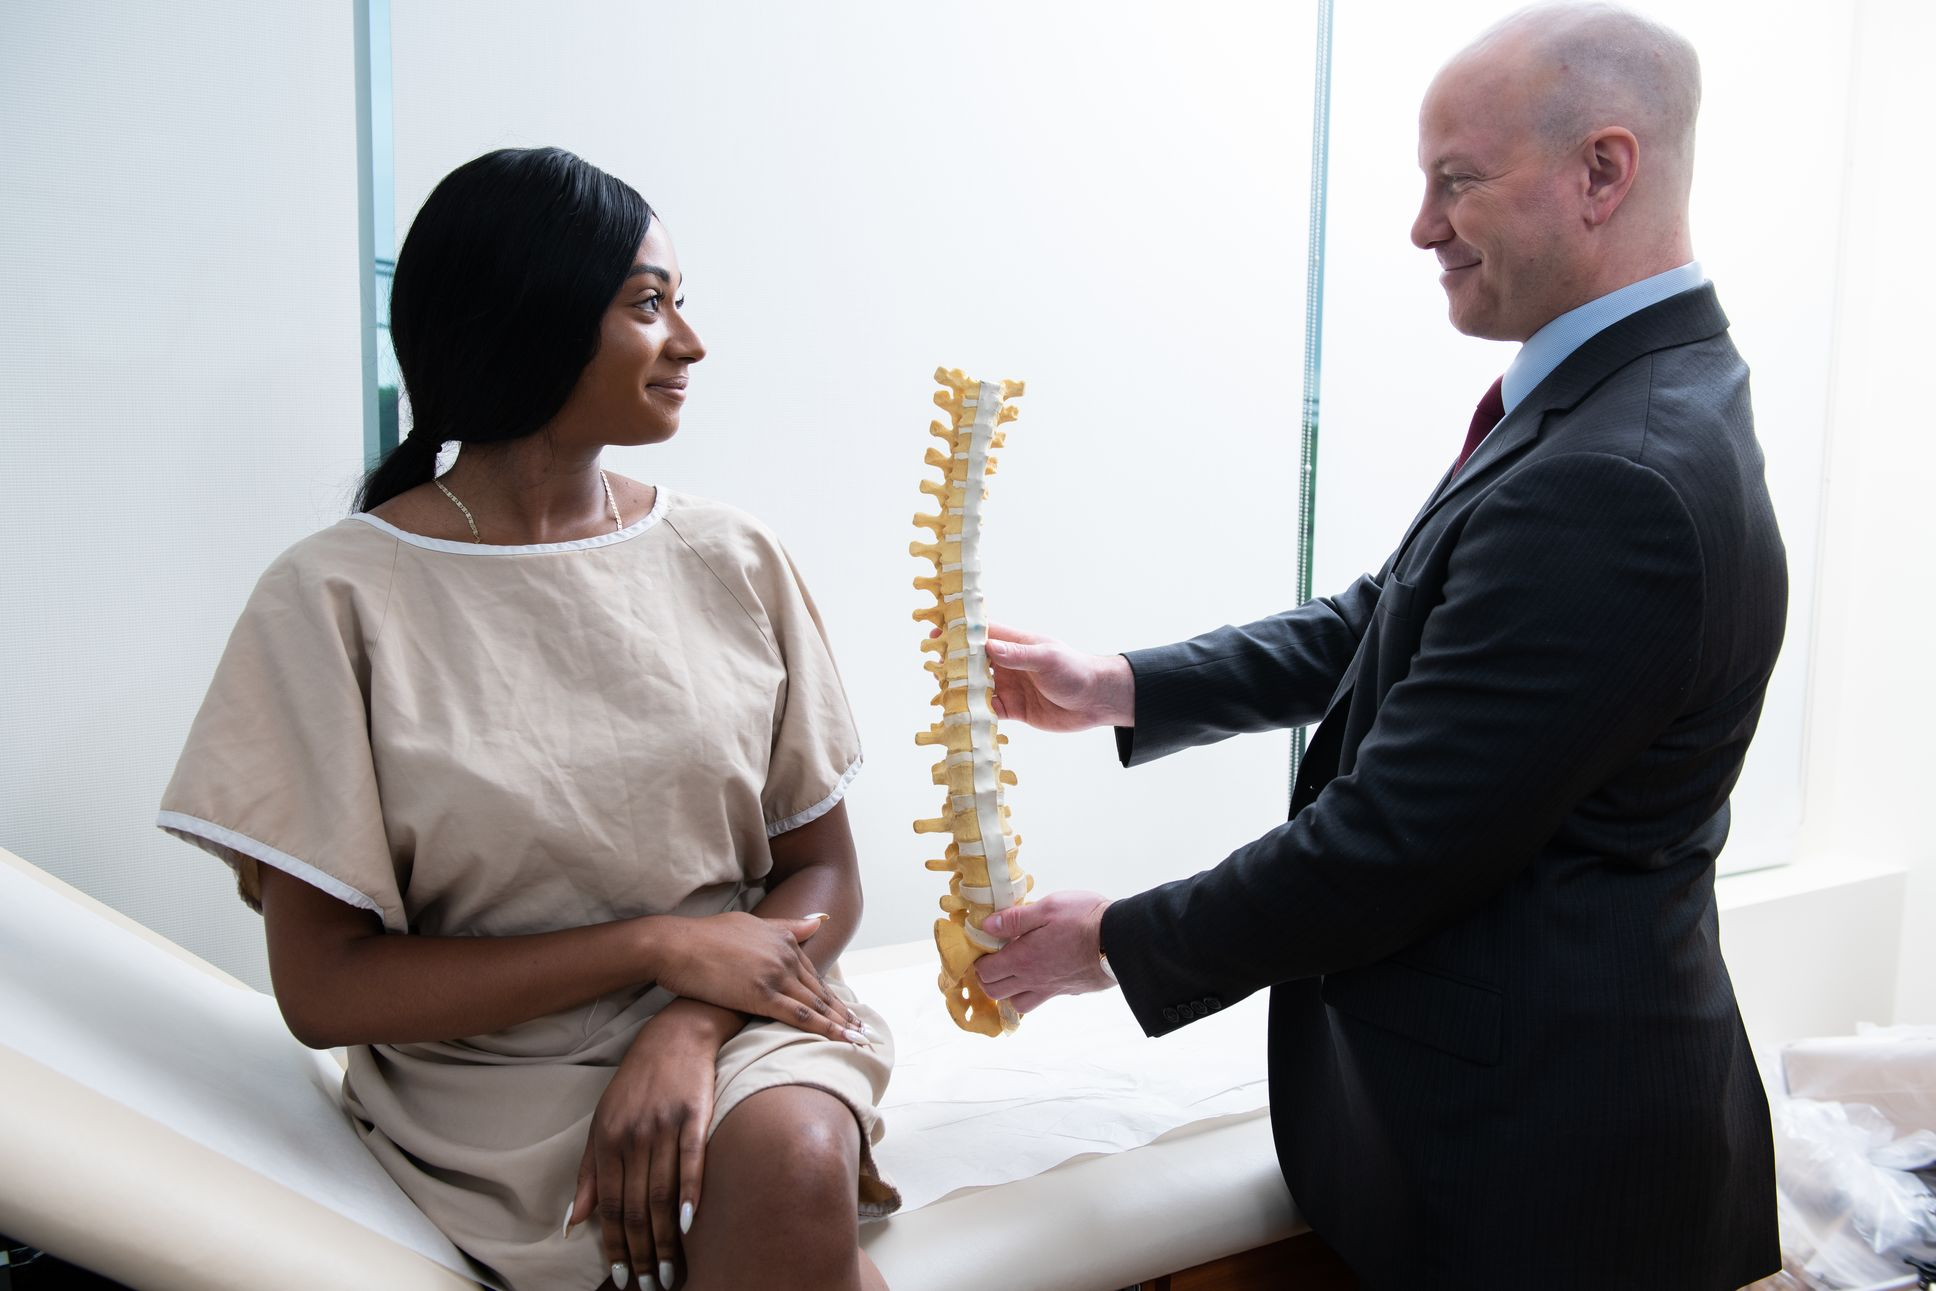 A doctor holds a model spine up to a female patient.